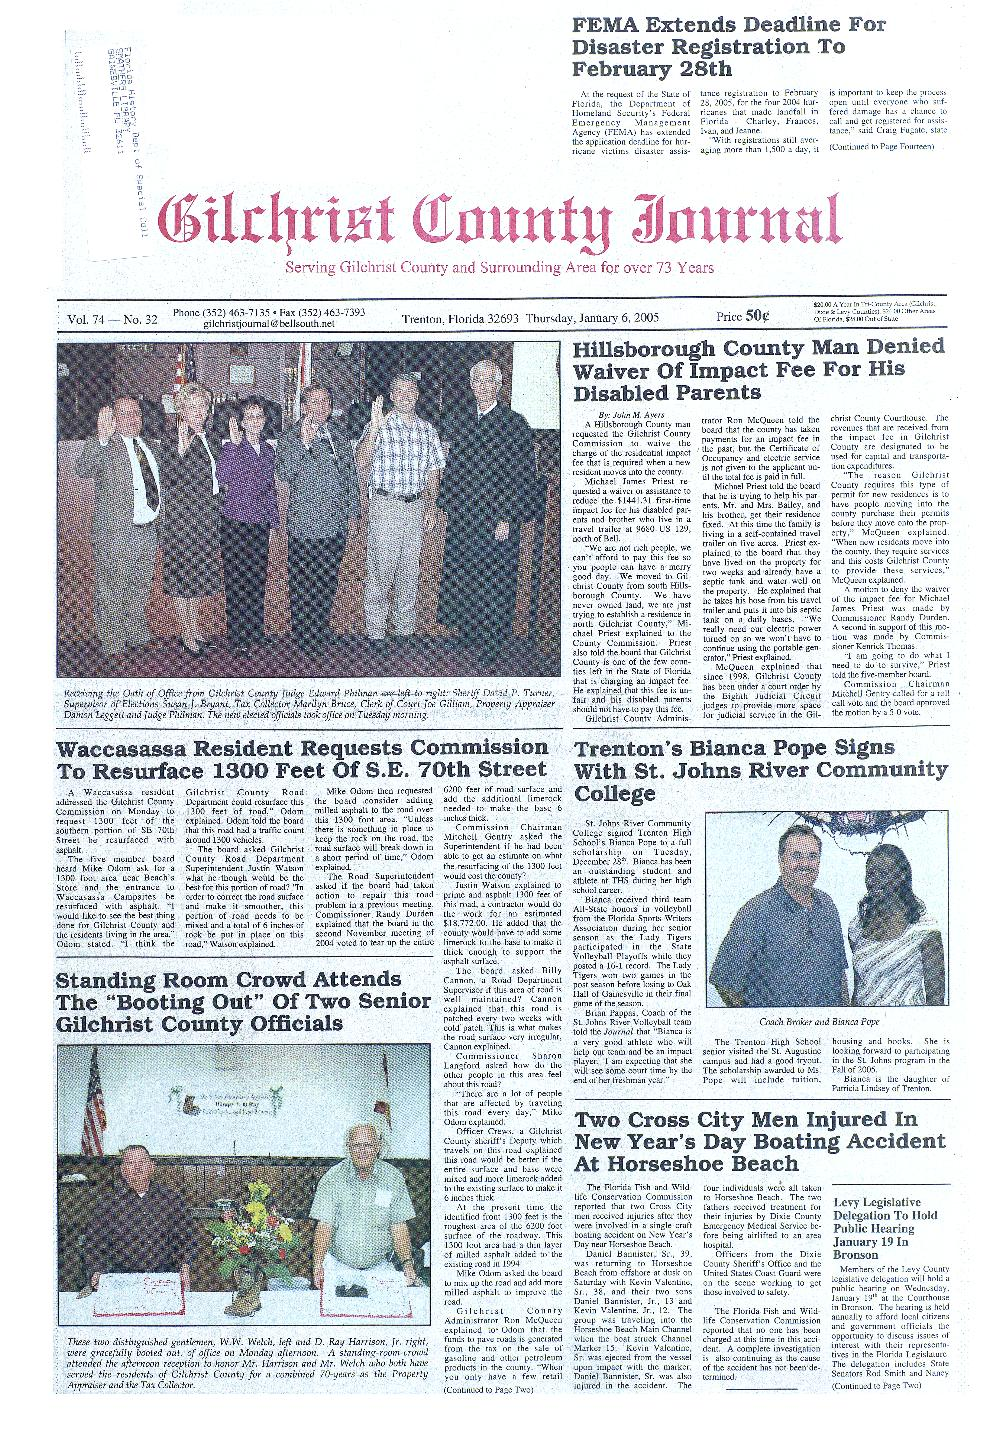 Gilchrist County journal - Page 1